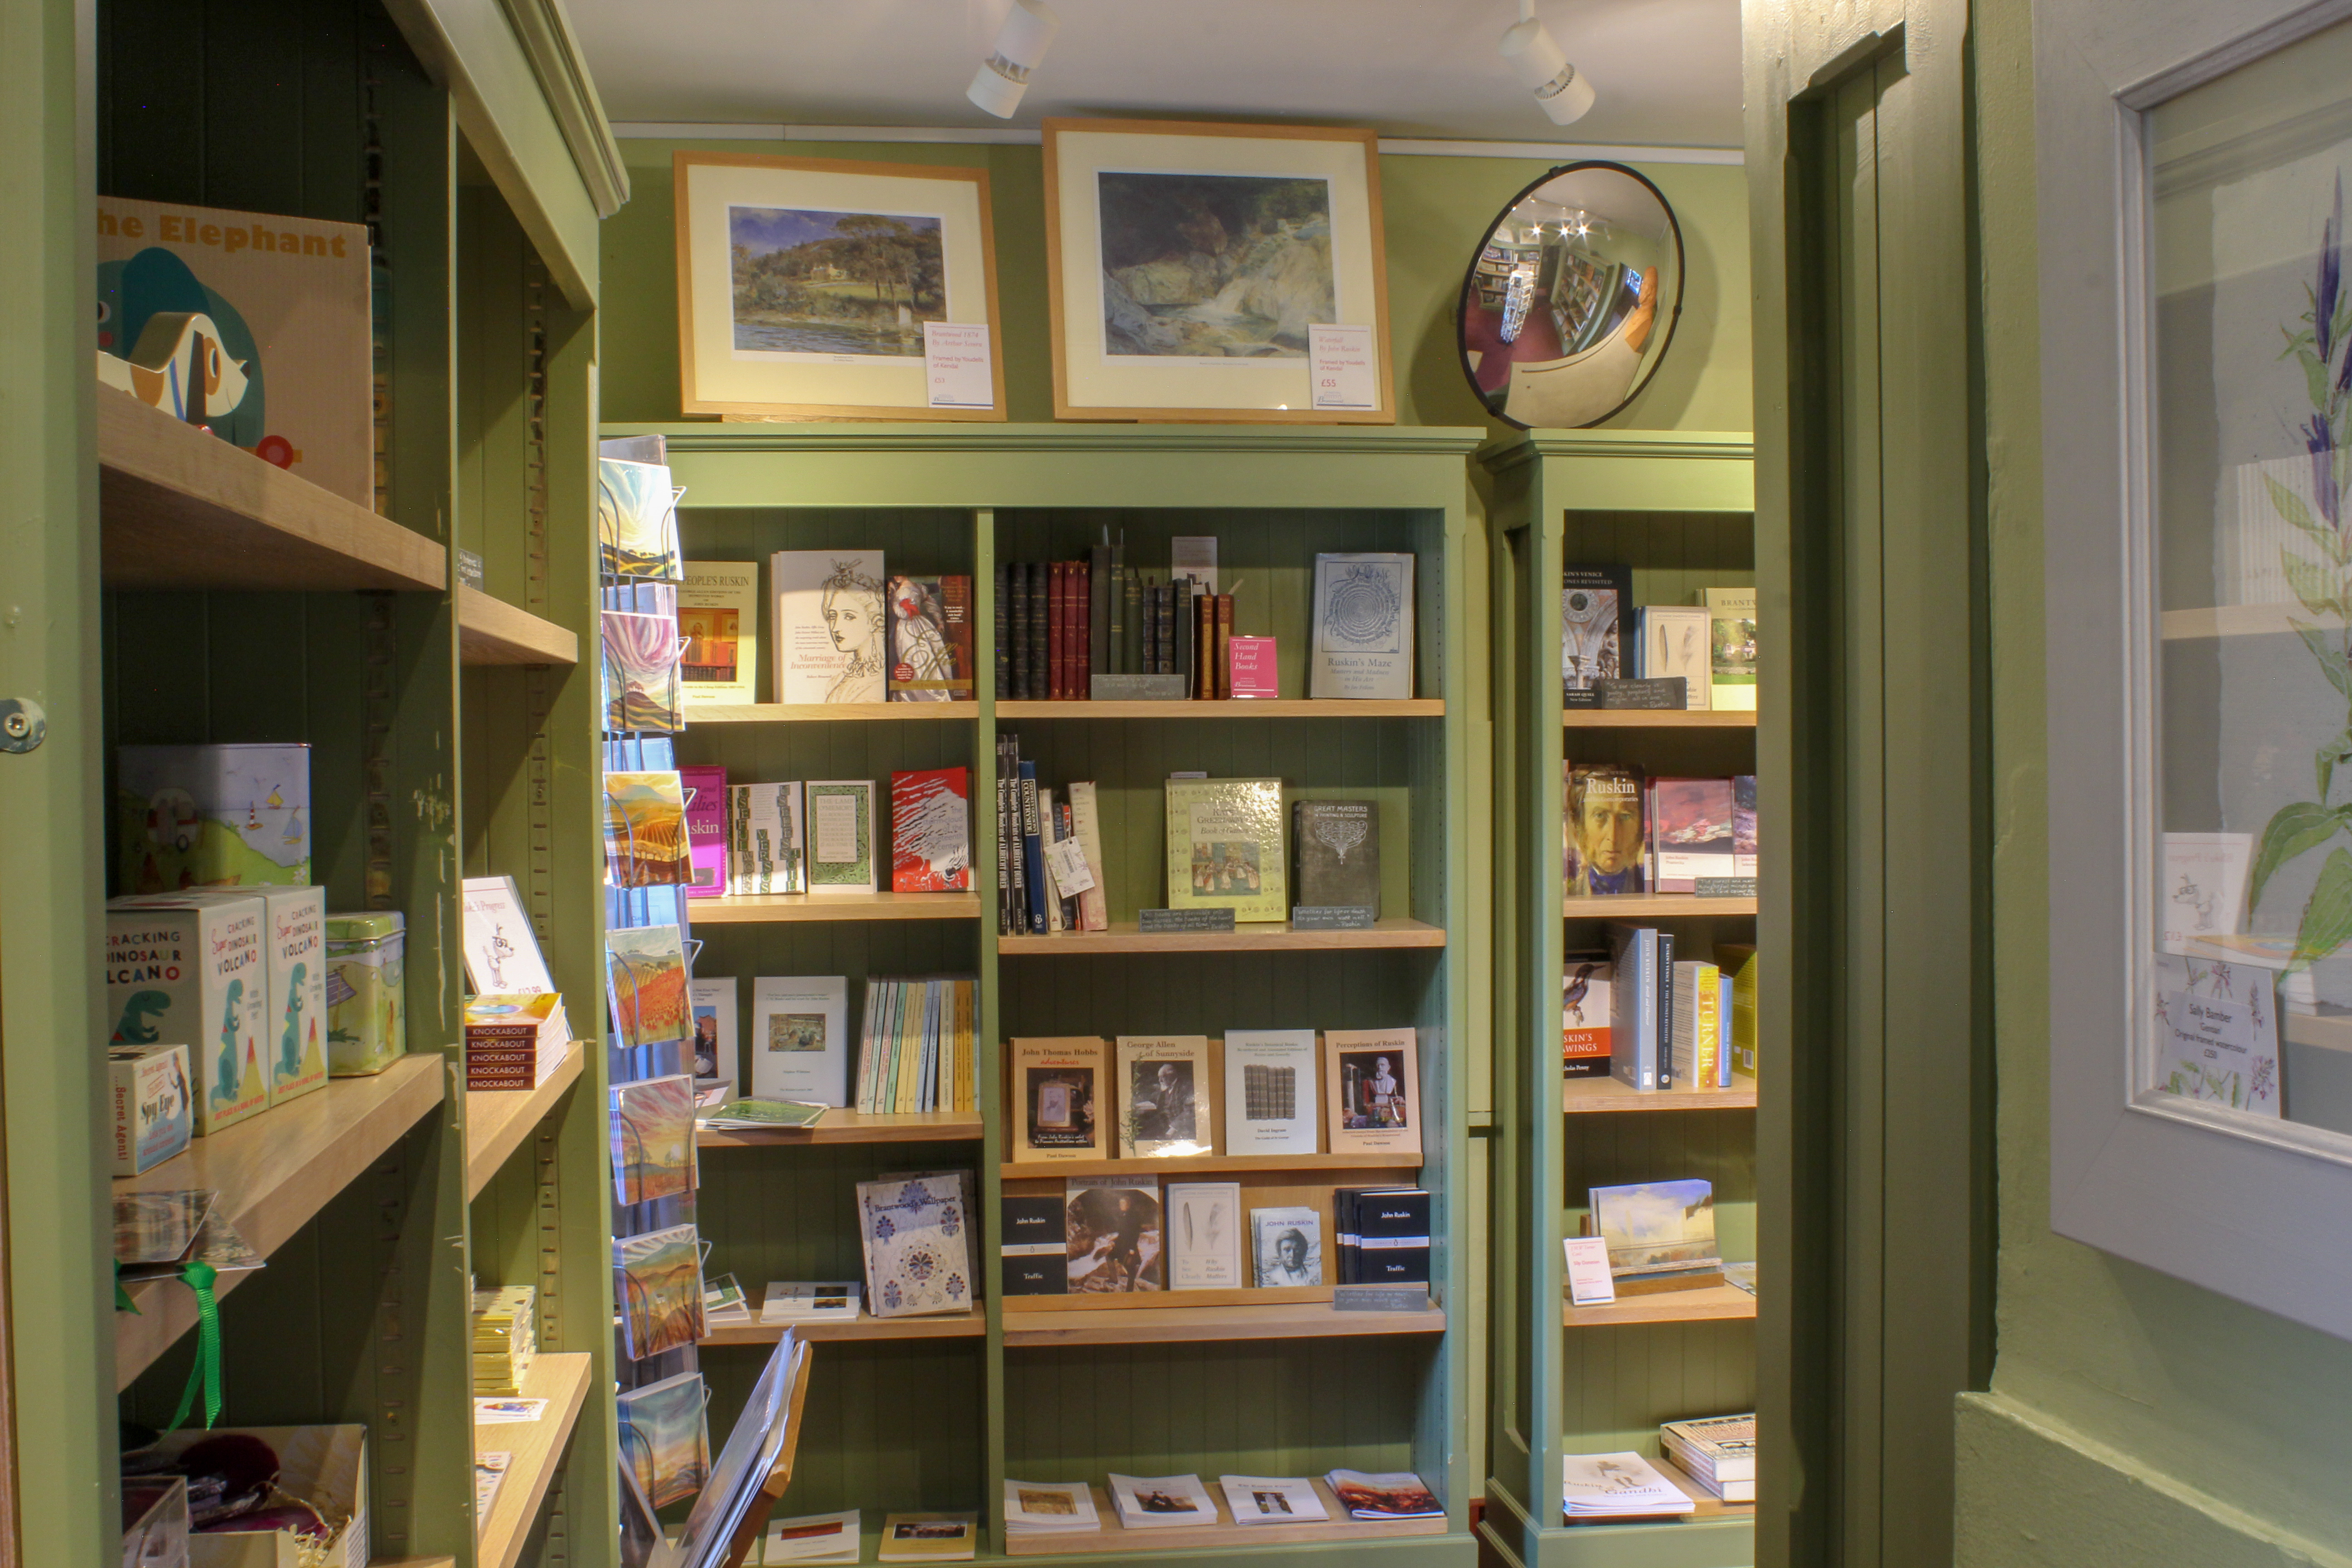 Brantwood- Bookshop of the month